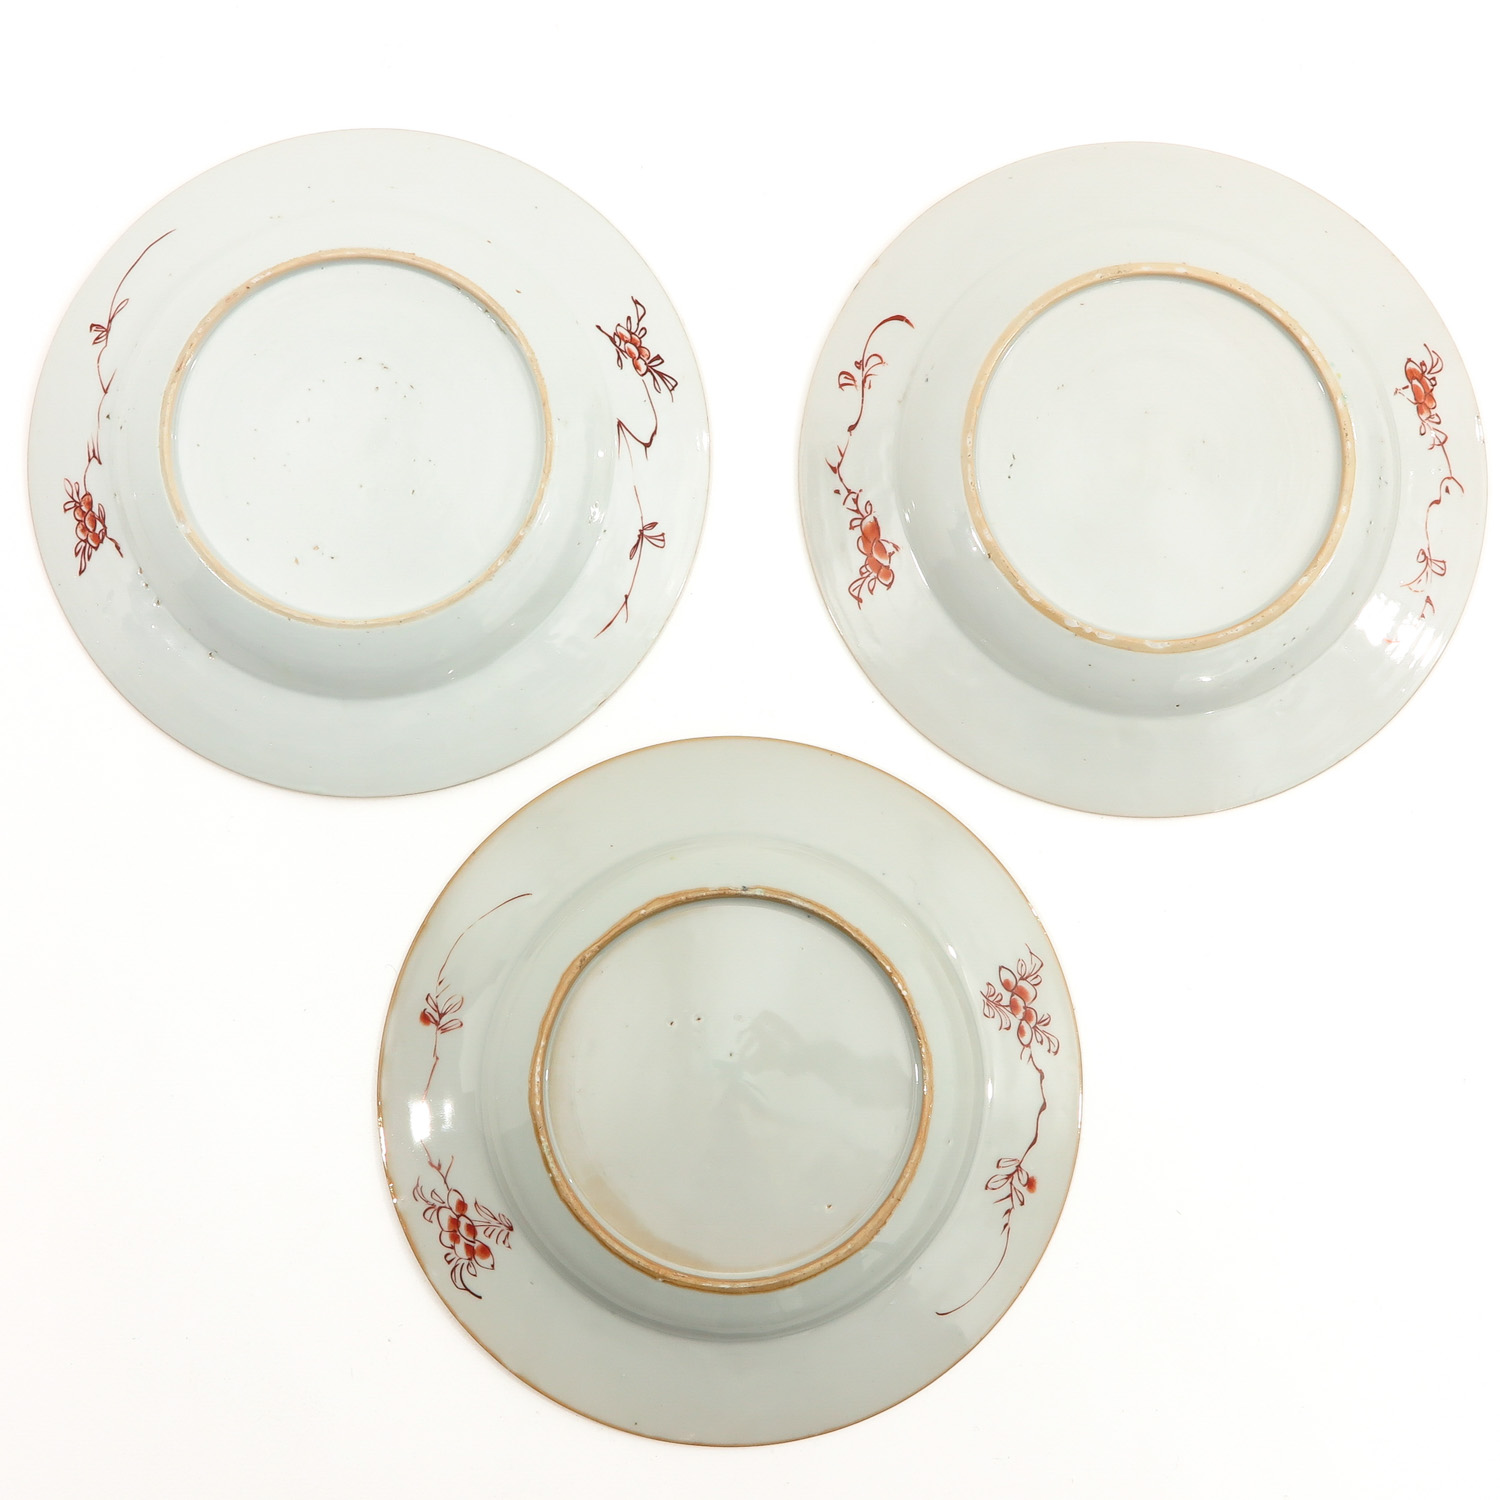 A Collection of 6 Polychrome Decor Plates - Image 6 of 9